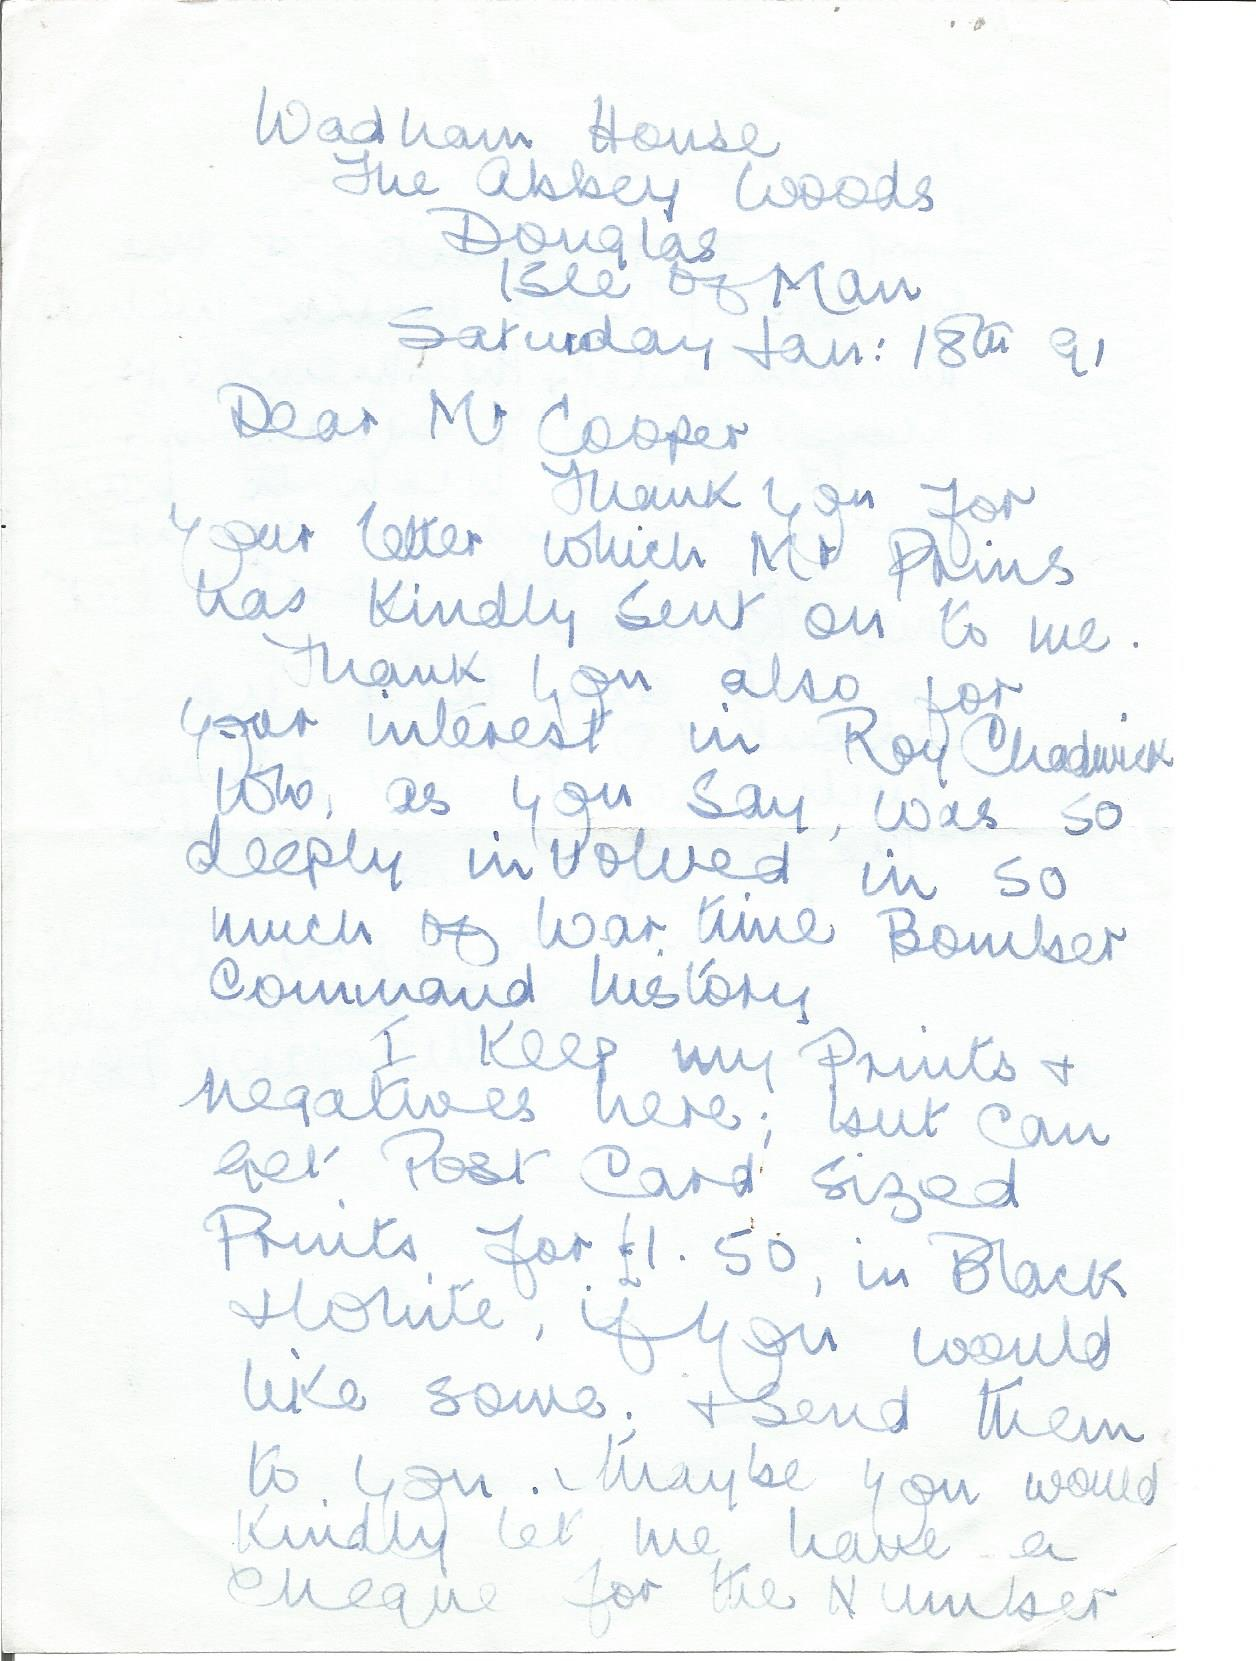 Lot 52 - Margaret Dove daughter of Roy Chadwick handwritten letter about his interest in Chadwick. Good